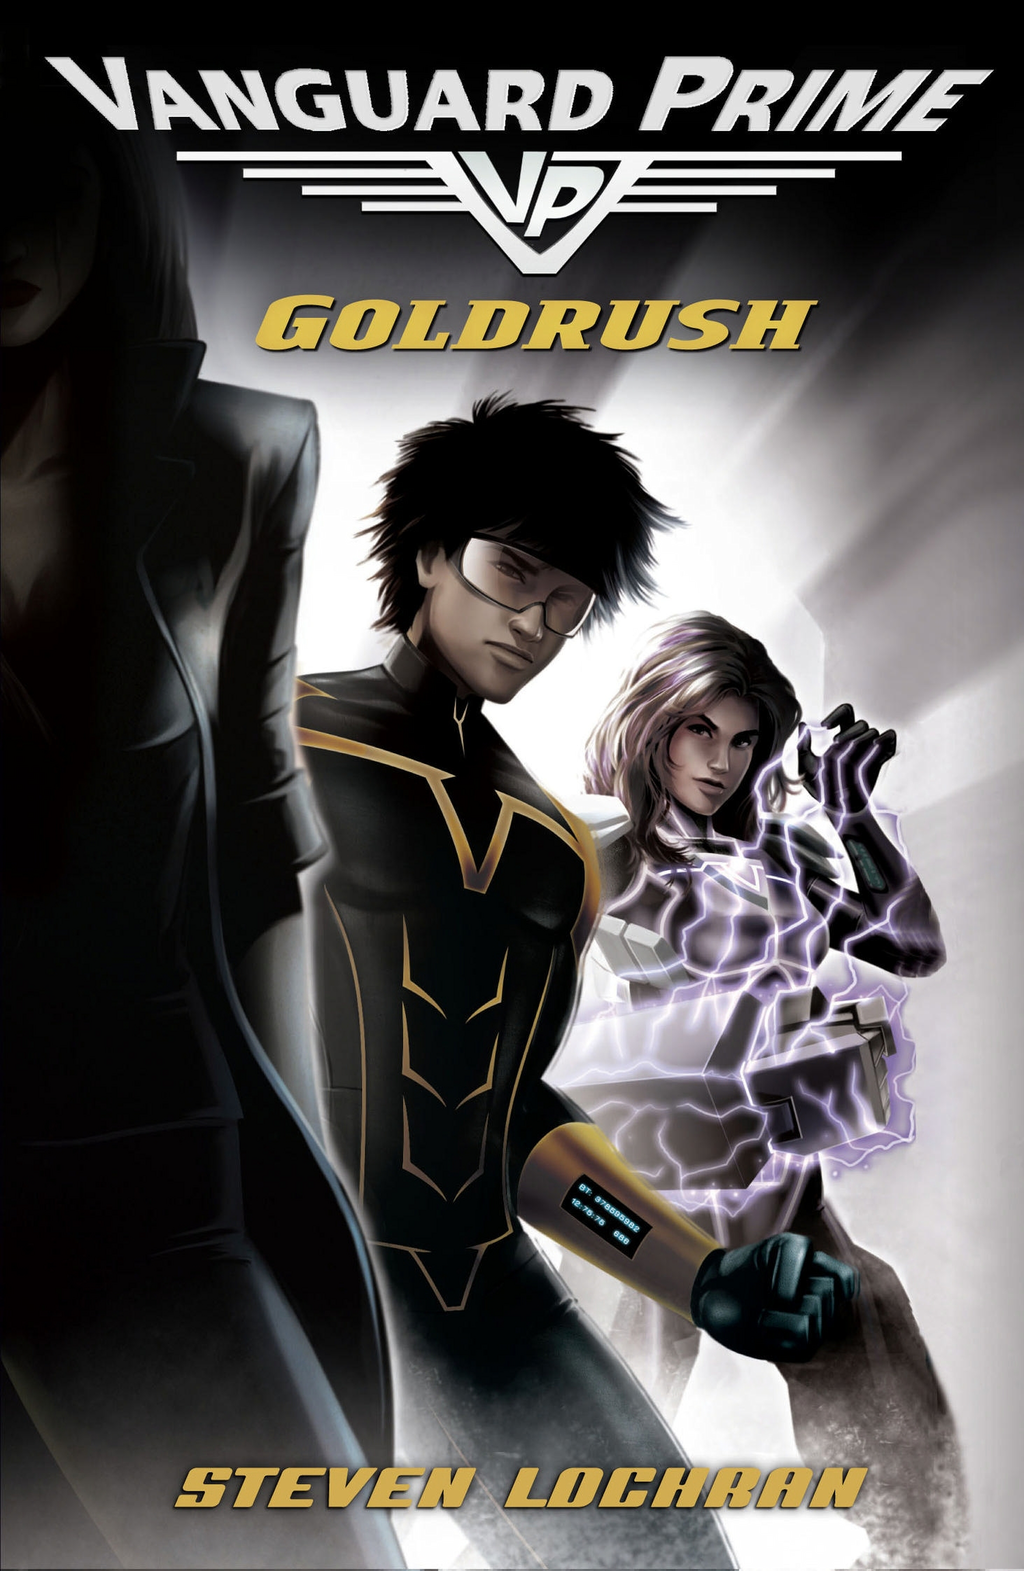 Goldrush: Vanguard Prime Book 1